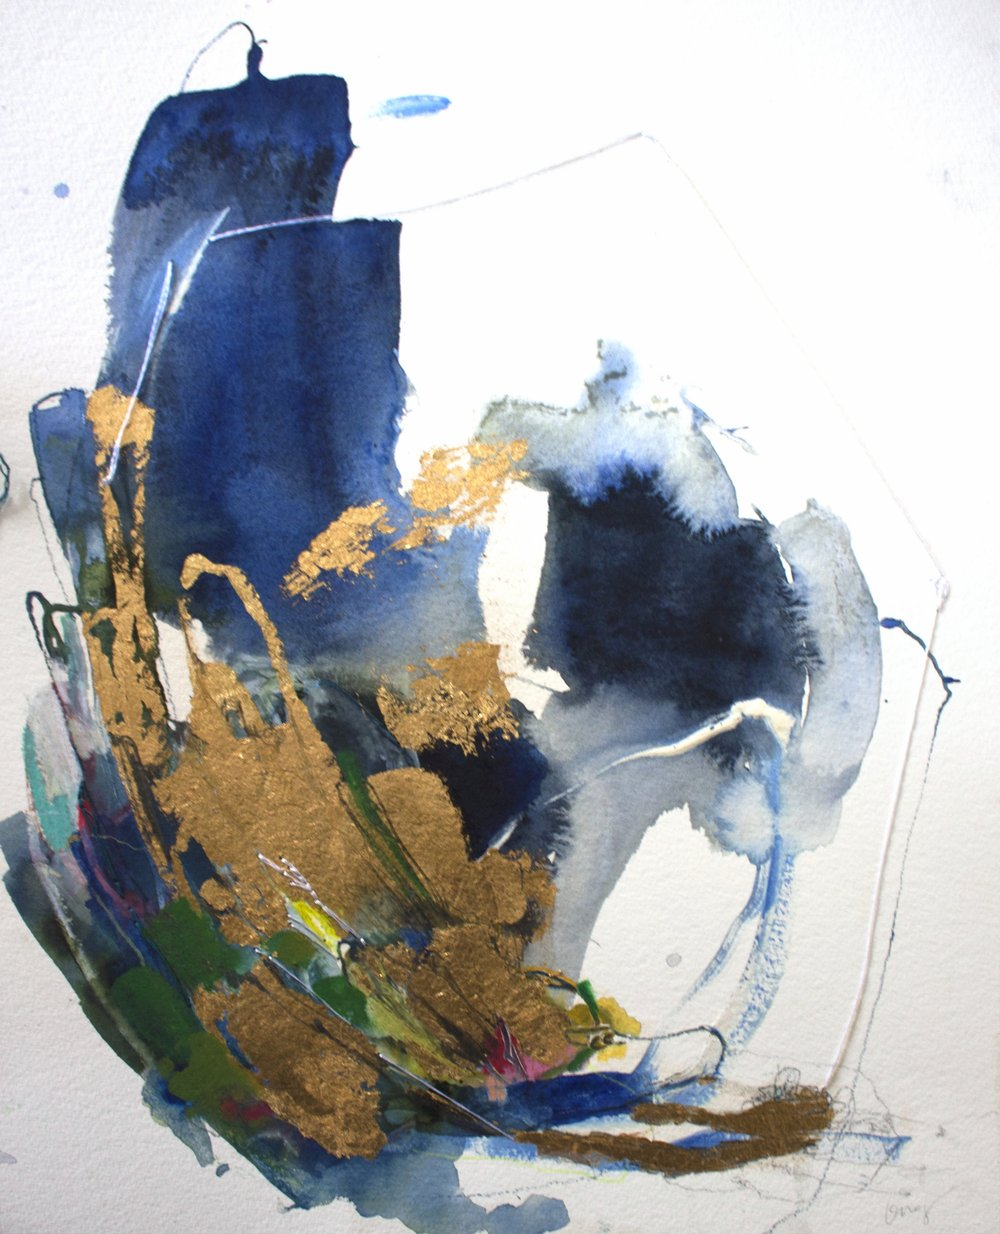 TUMBLING WAVE #6 12 in. x 16 in. acrylic, pencil, stitching, gold leaf on paper  SOLD